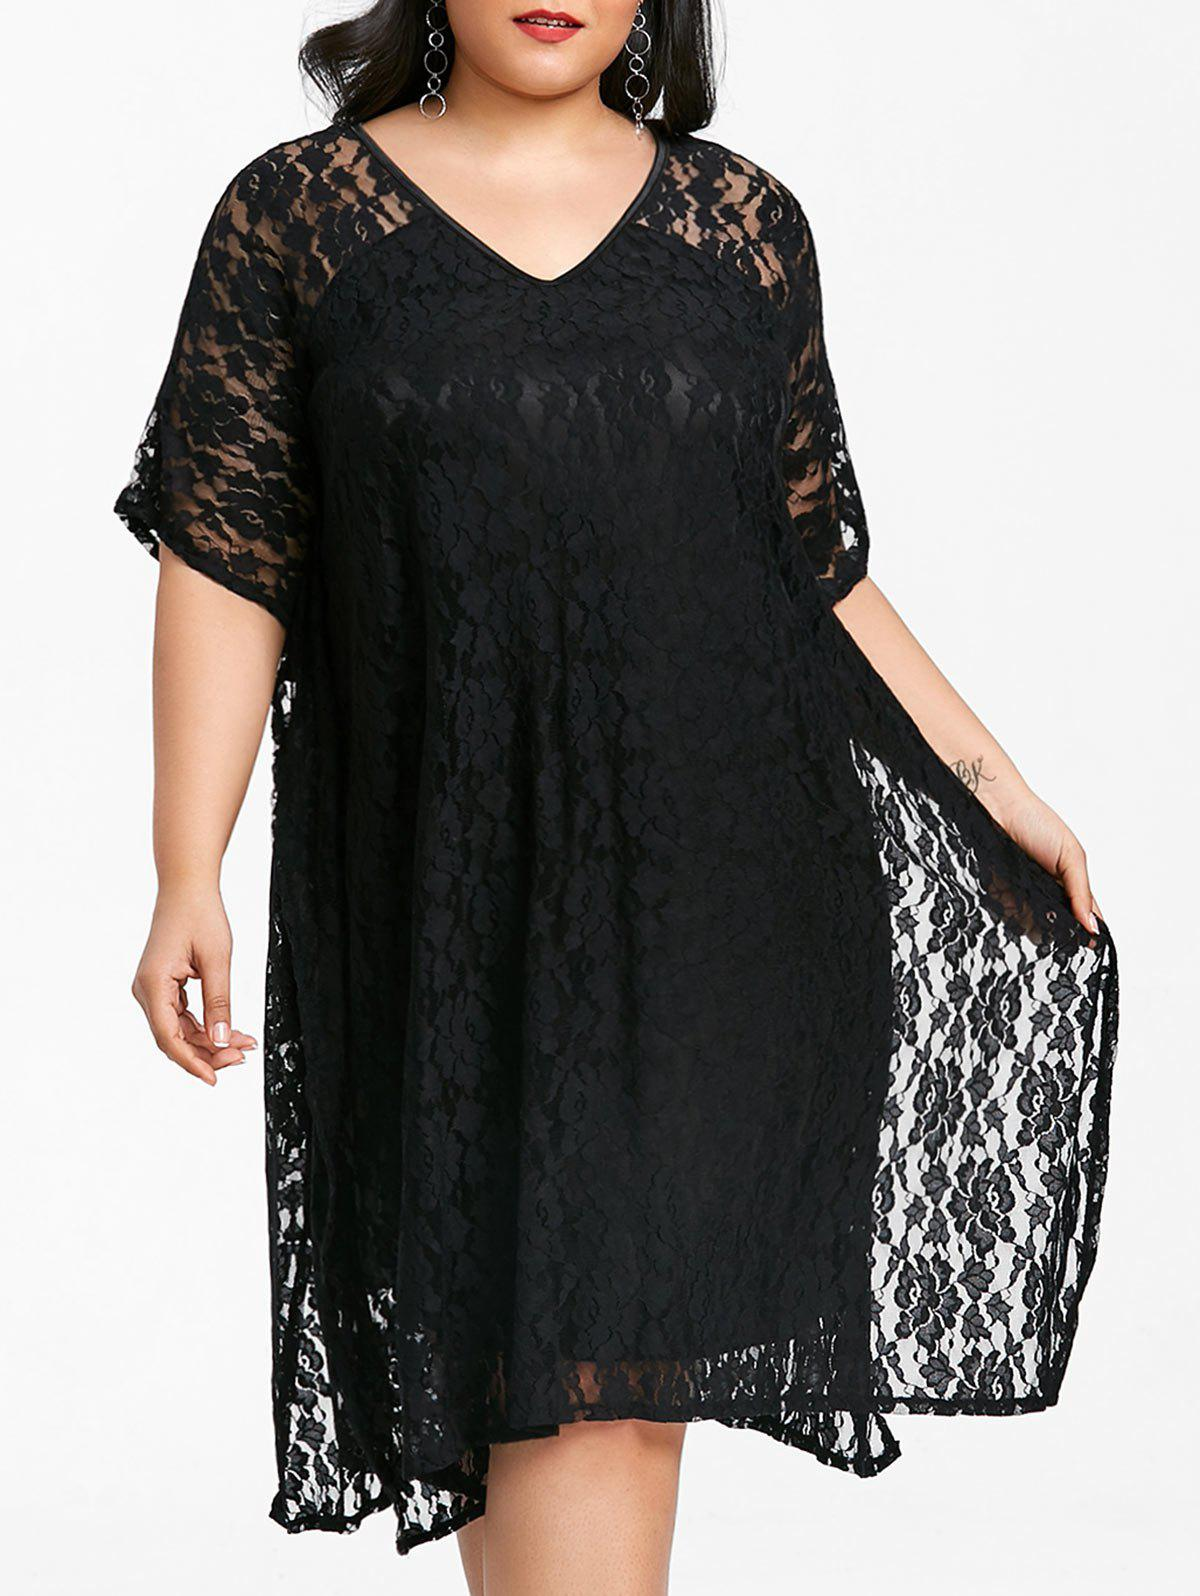 Hot V Neck Plus Size Lace Dress